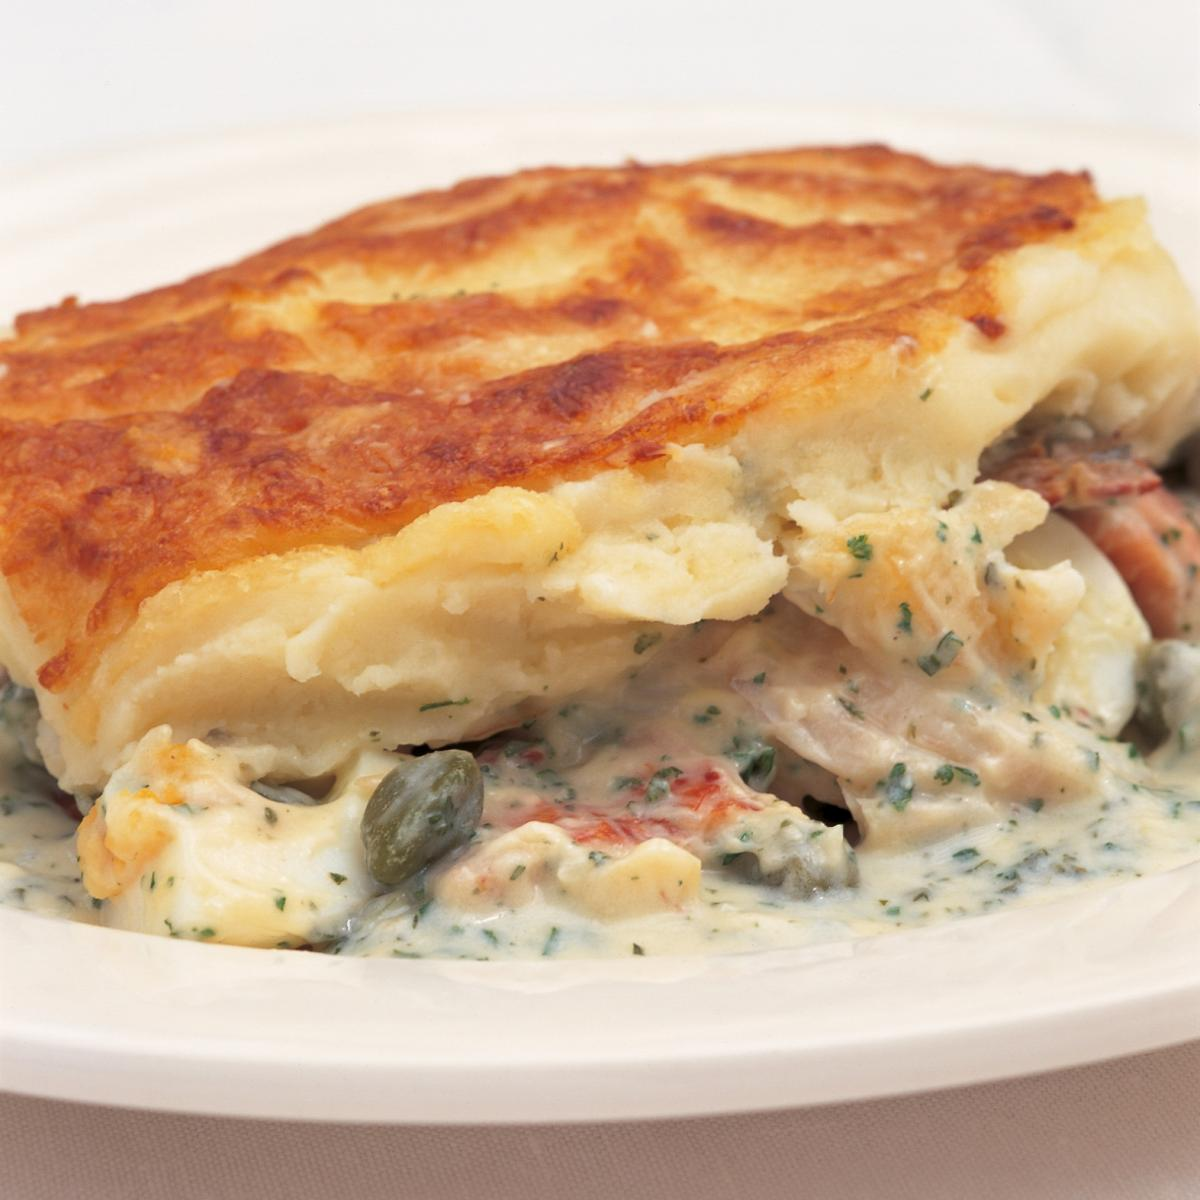 Htc luxury smoked fish pie